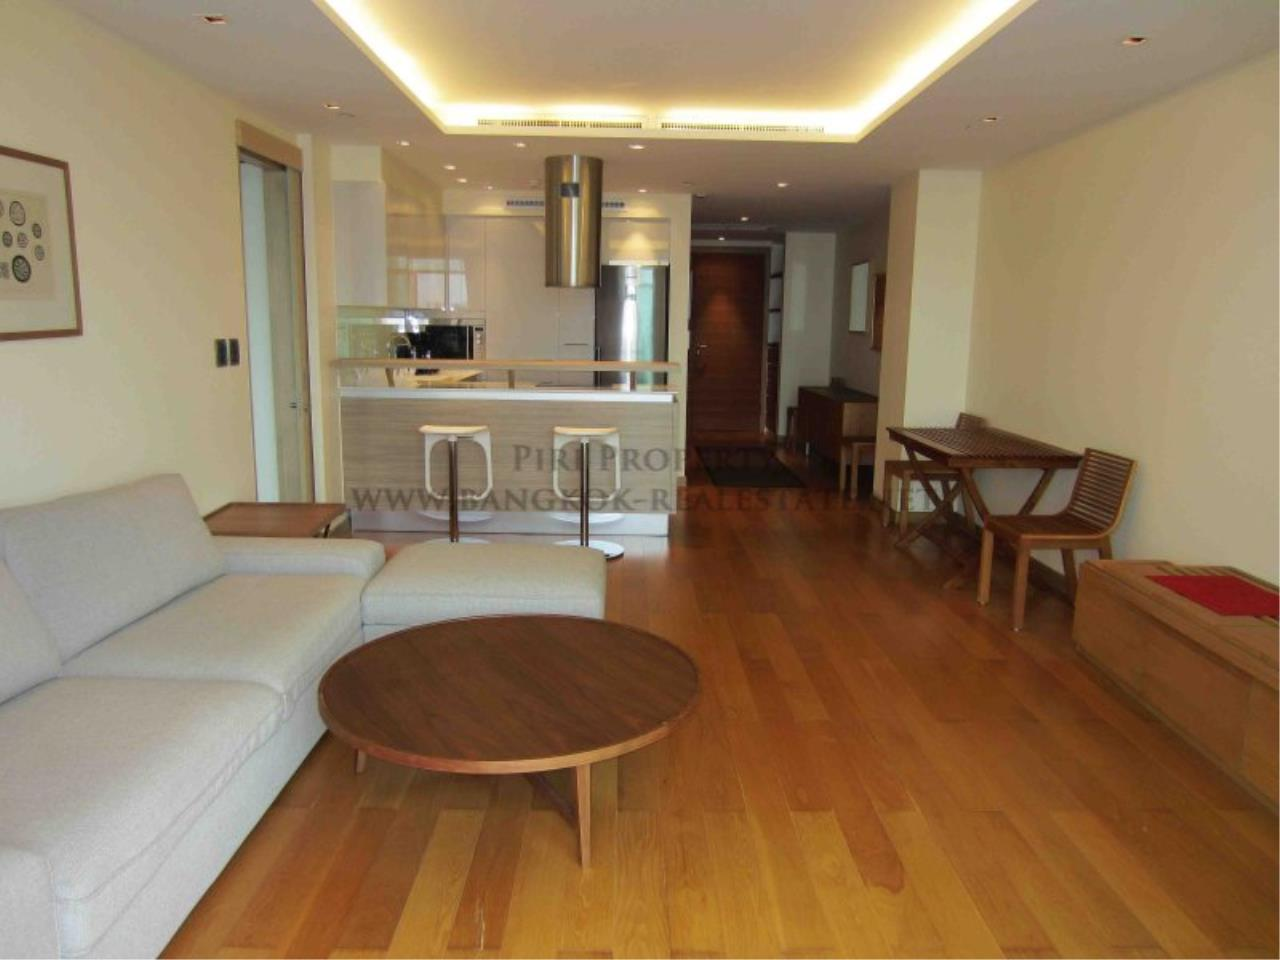 Piri Property Agency's Super spacious and modern 1 Bedroom Condo for Rent in Ari 7